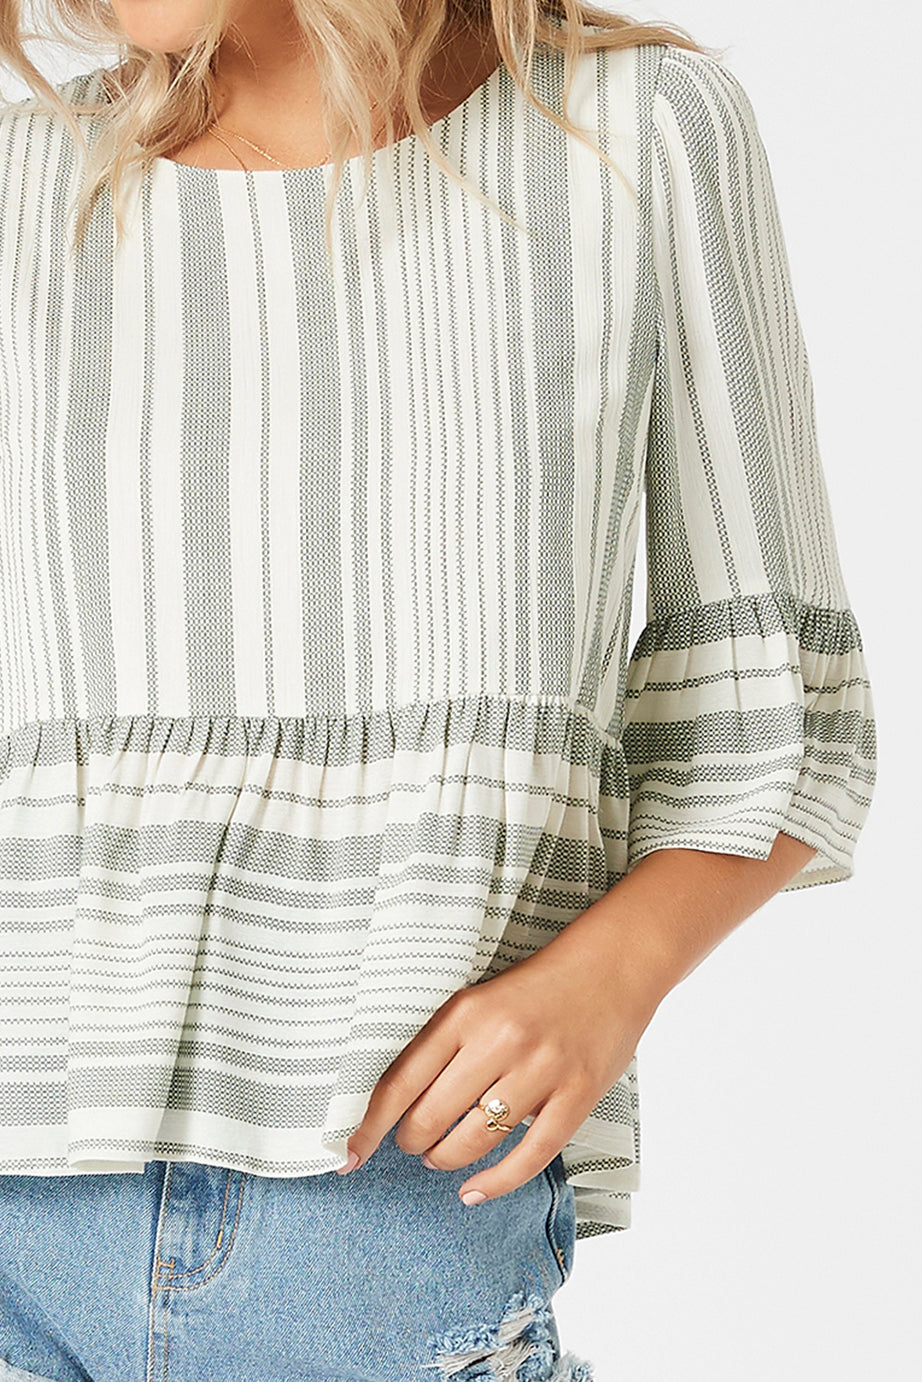 Hamptons Summer Top